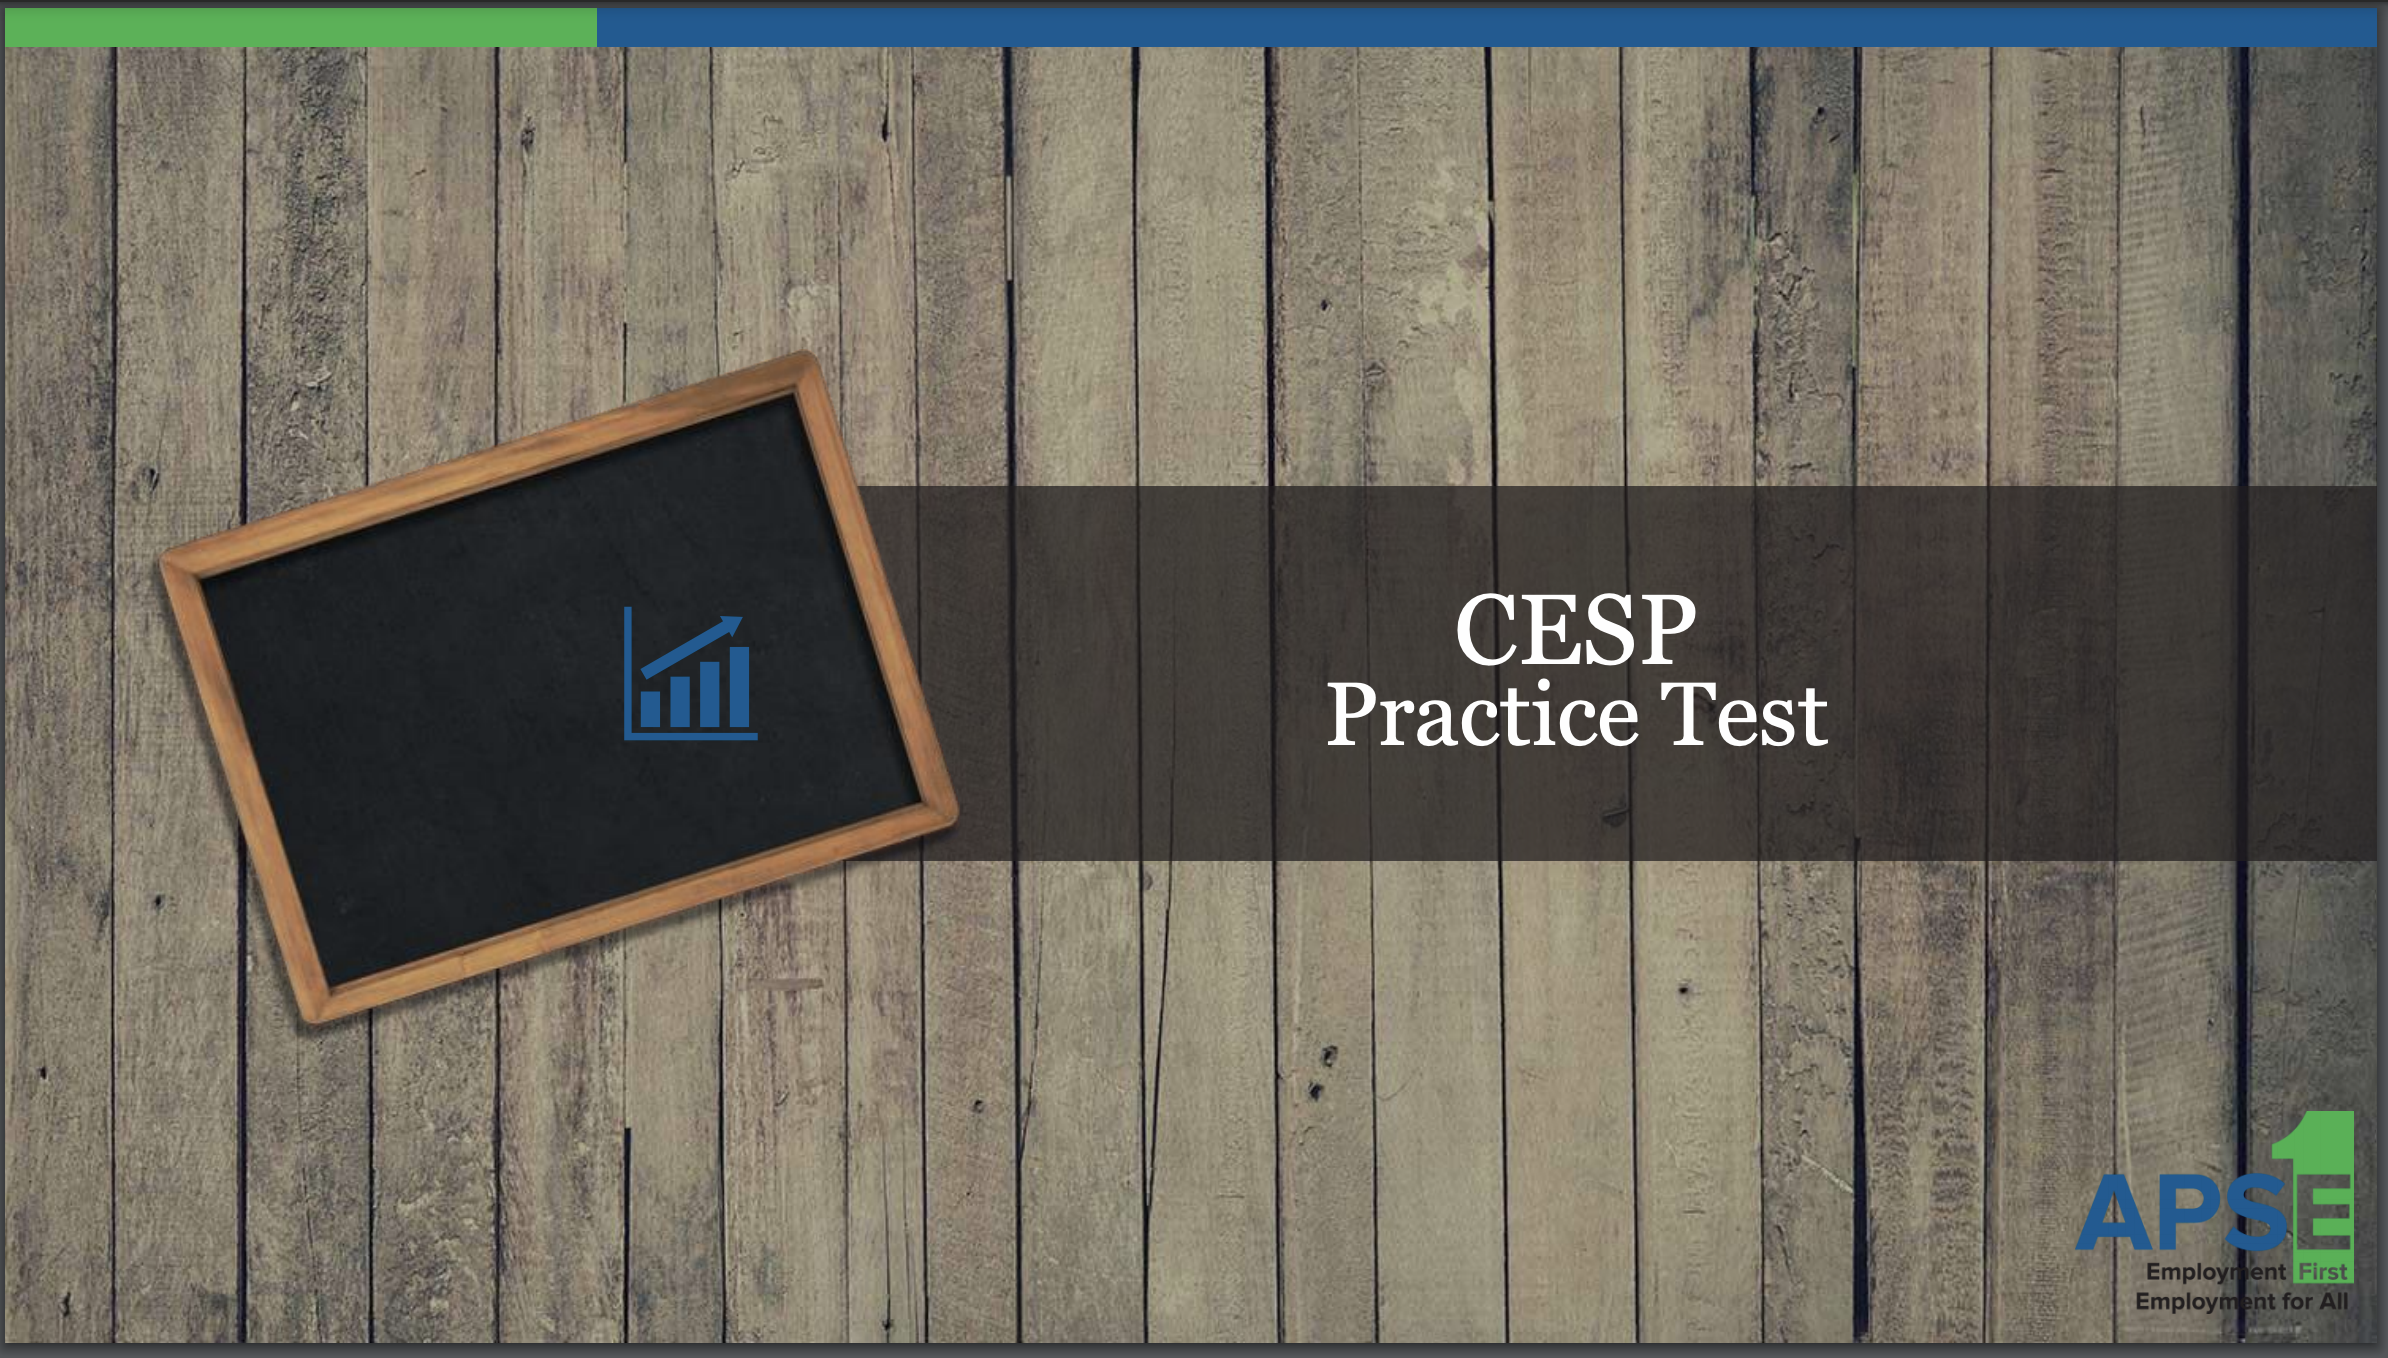 CESP Practice test first page.